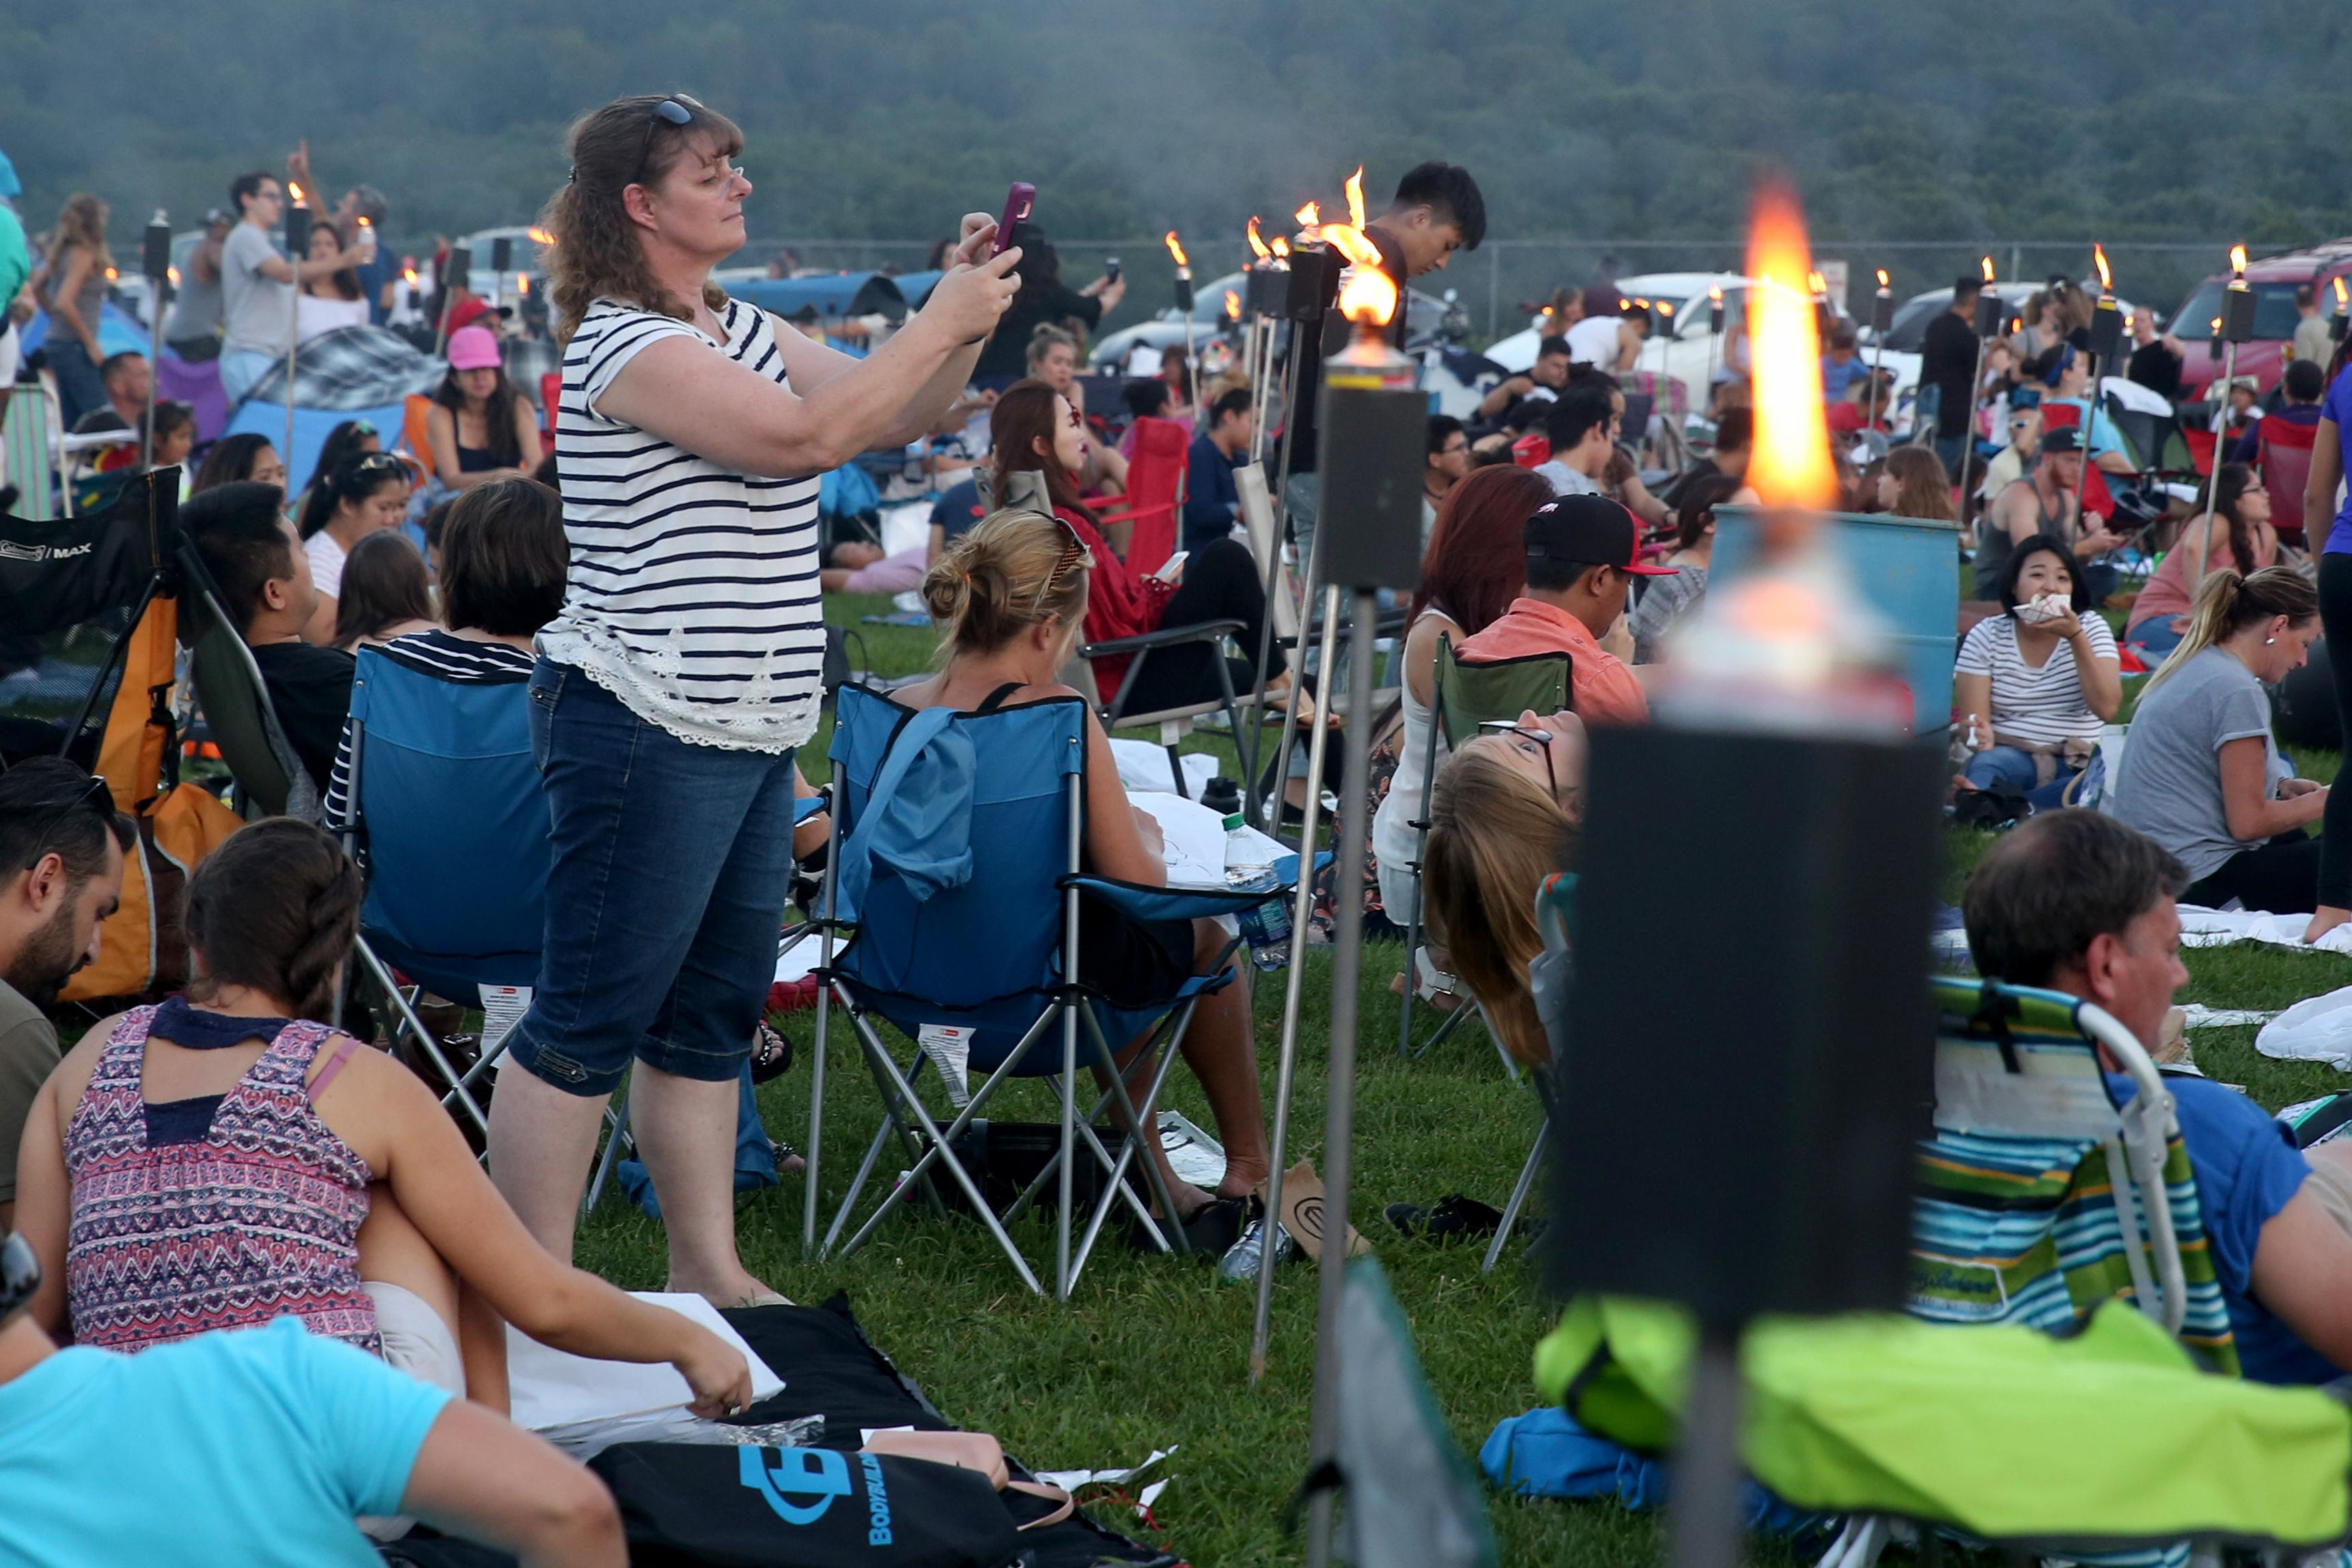 The evening started in Delta, Pa, just over the Maryland border. People gathered to draw on their lanterns, enjoy live music and prepare for the big event at sundown. (Amanda Andrade-Rhoades/DC Refined)